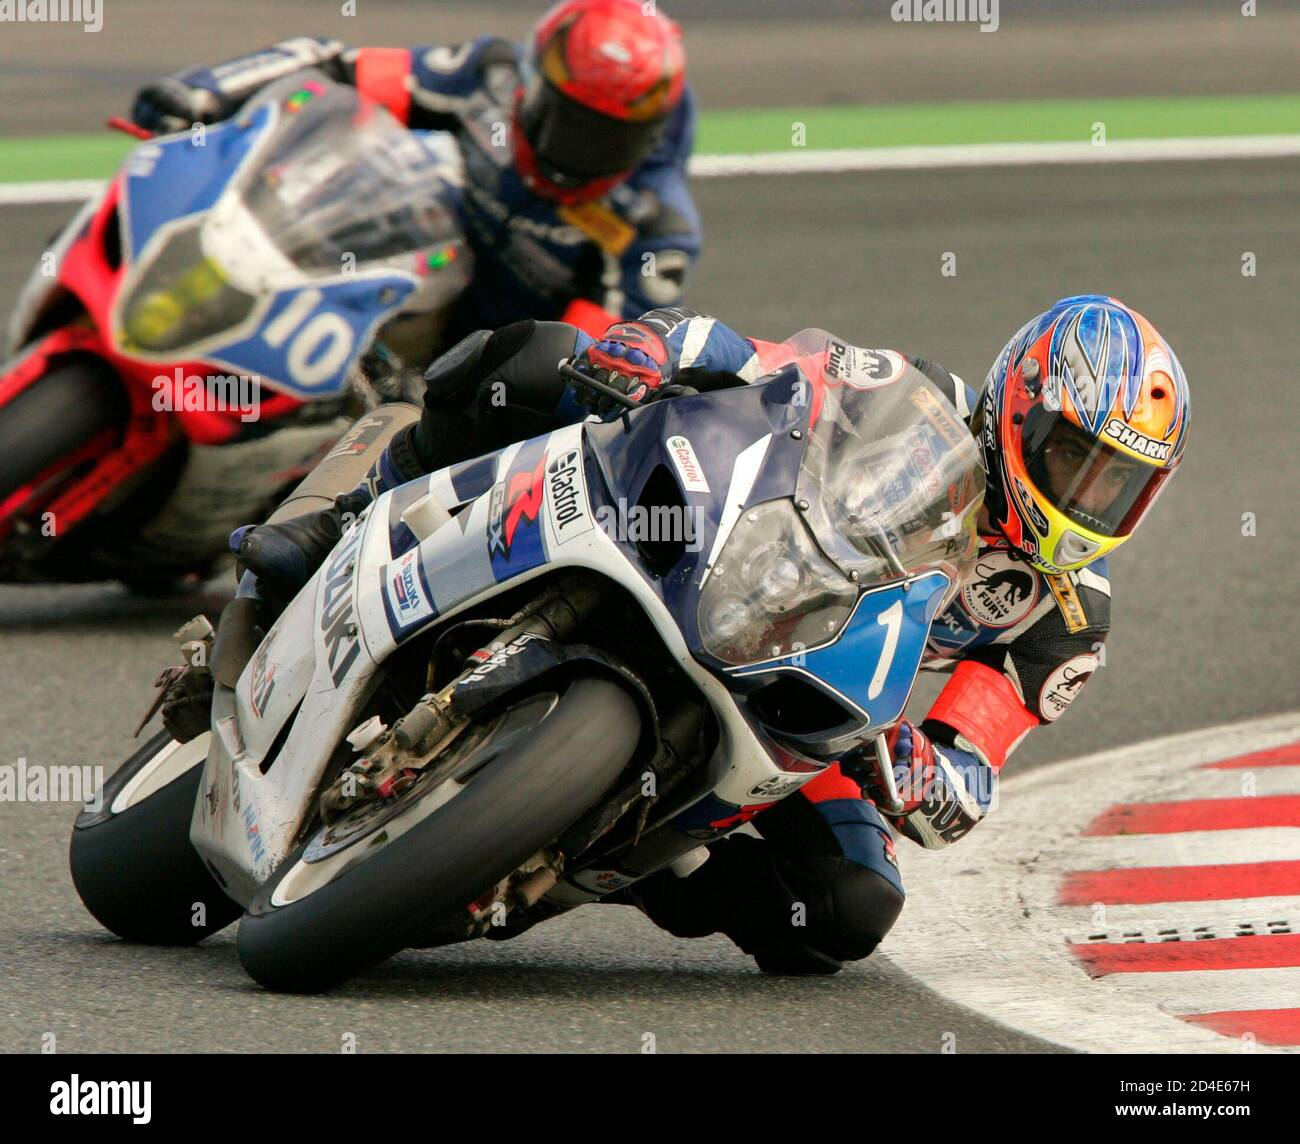 Matthieu Lagrive of France drives his Suzuki GSXR 1000 to lead the Bol d'Or endurance motorcycling race after 22 hours of competition in Magny-Cours.  Suzuki Castrol Team rider Matthieu Lagrive (R) of France drives his Suzuki GSXR 1000 to lead the Bol d'Or endurance motorcycling race after 22 hours of competition in Magny-Cours, France September 12, 2004. Behind (L) is the Infini Team Moto Suzuki GSXR 1000 in seventh place. REUTERS/Robert Pratta Foto Stock